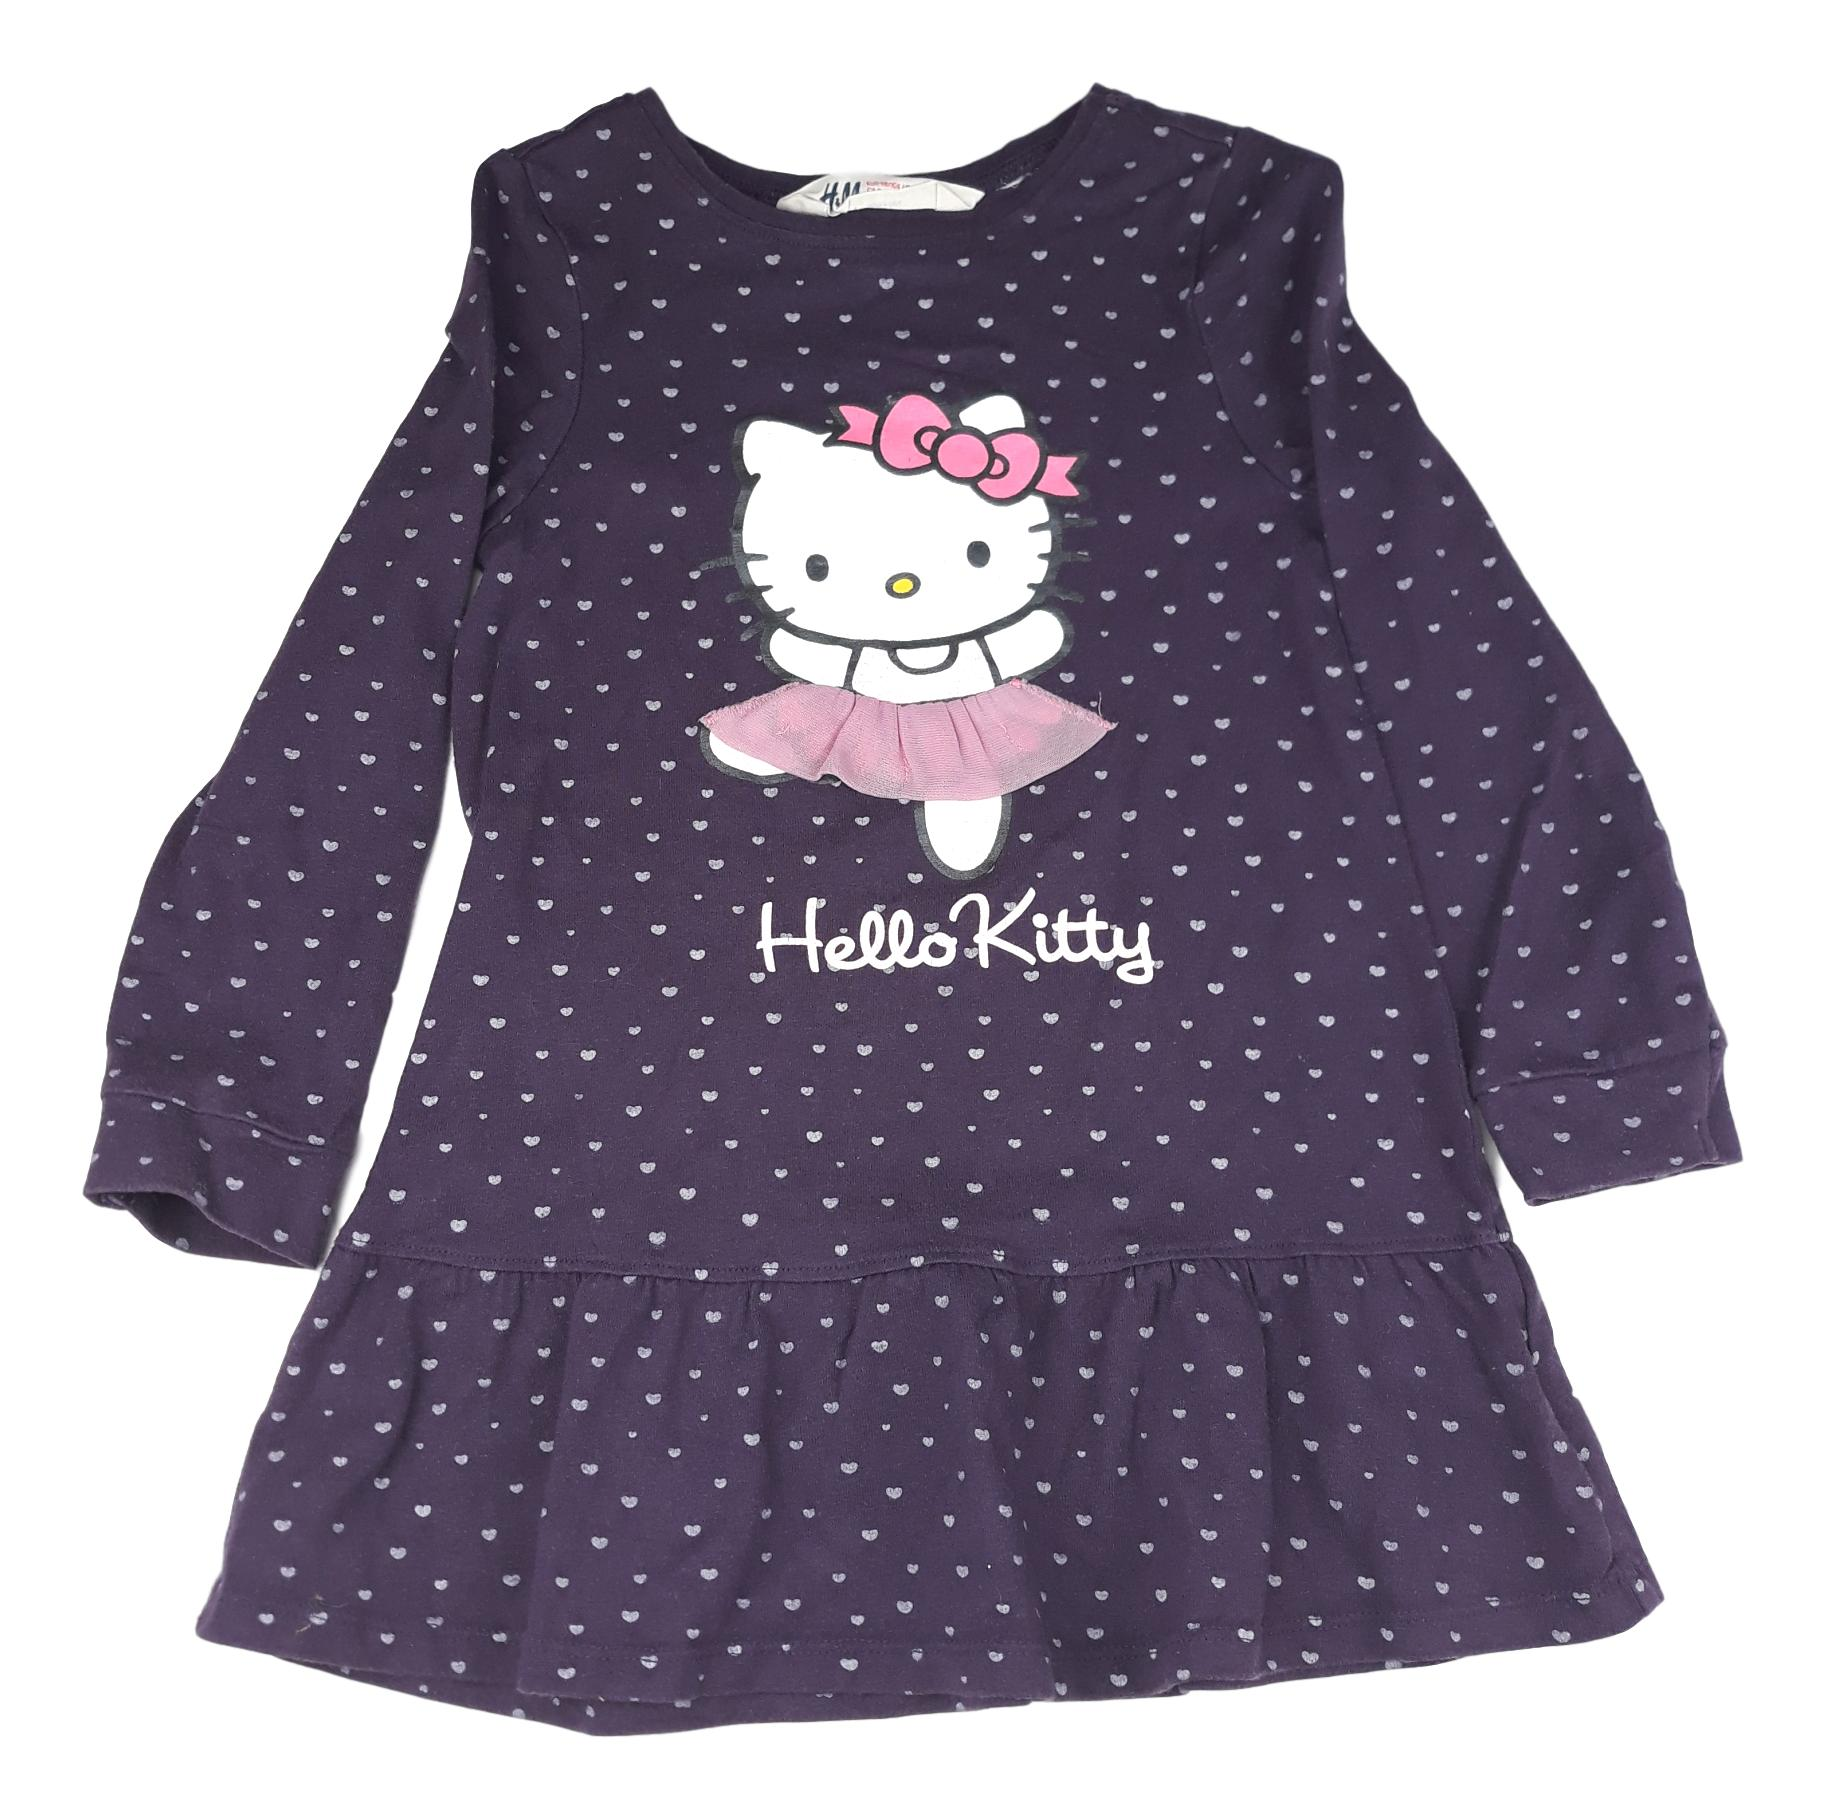 H&M - Taille 2-4 ans